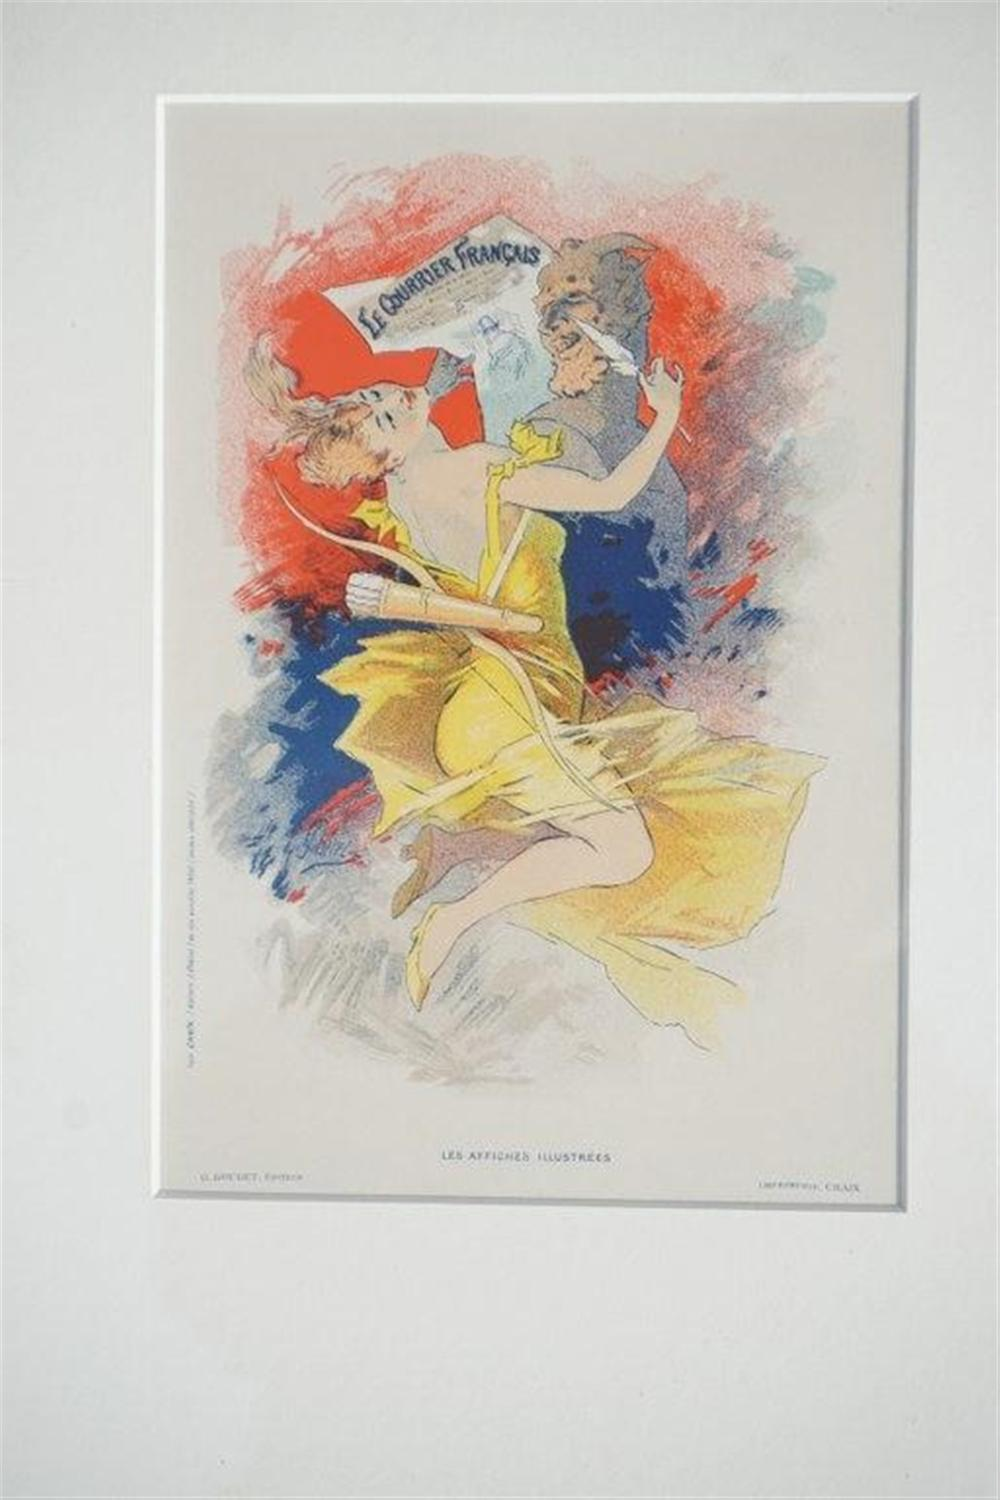 "1896 CHERET LE COURRIER FRANCAIS STONE LITHO POSTER, SHEET SIZE 8 3/4"" X 12 1/4"", EXCELLENT CONDITION, FROM RETIRED DEALERS COLLECTION, SHRINK WRAPPED AND MATTED. IMPRIMERIE CHAIX."